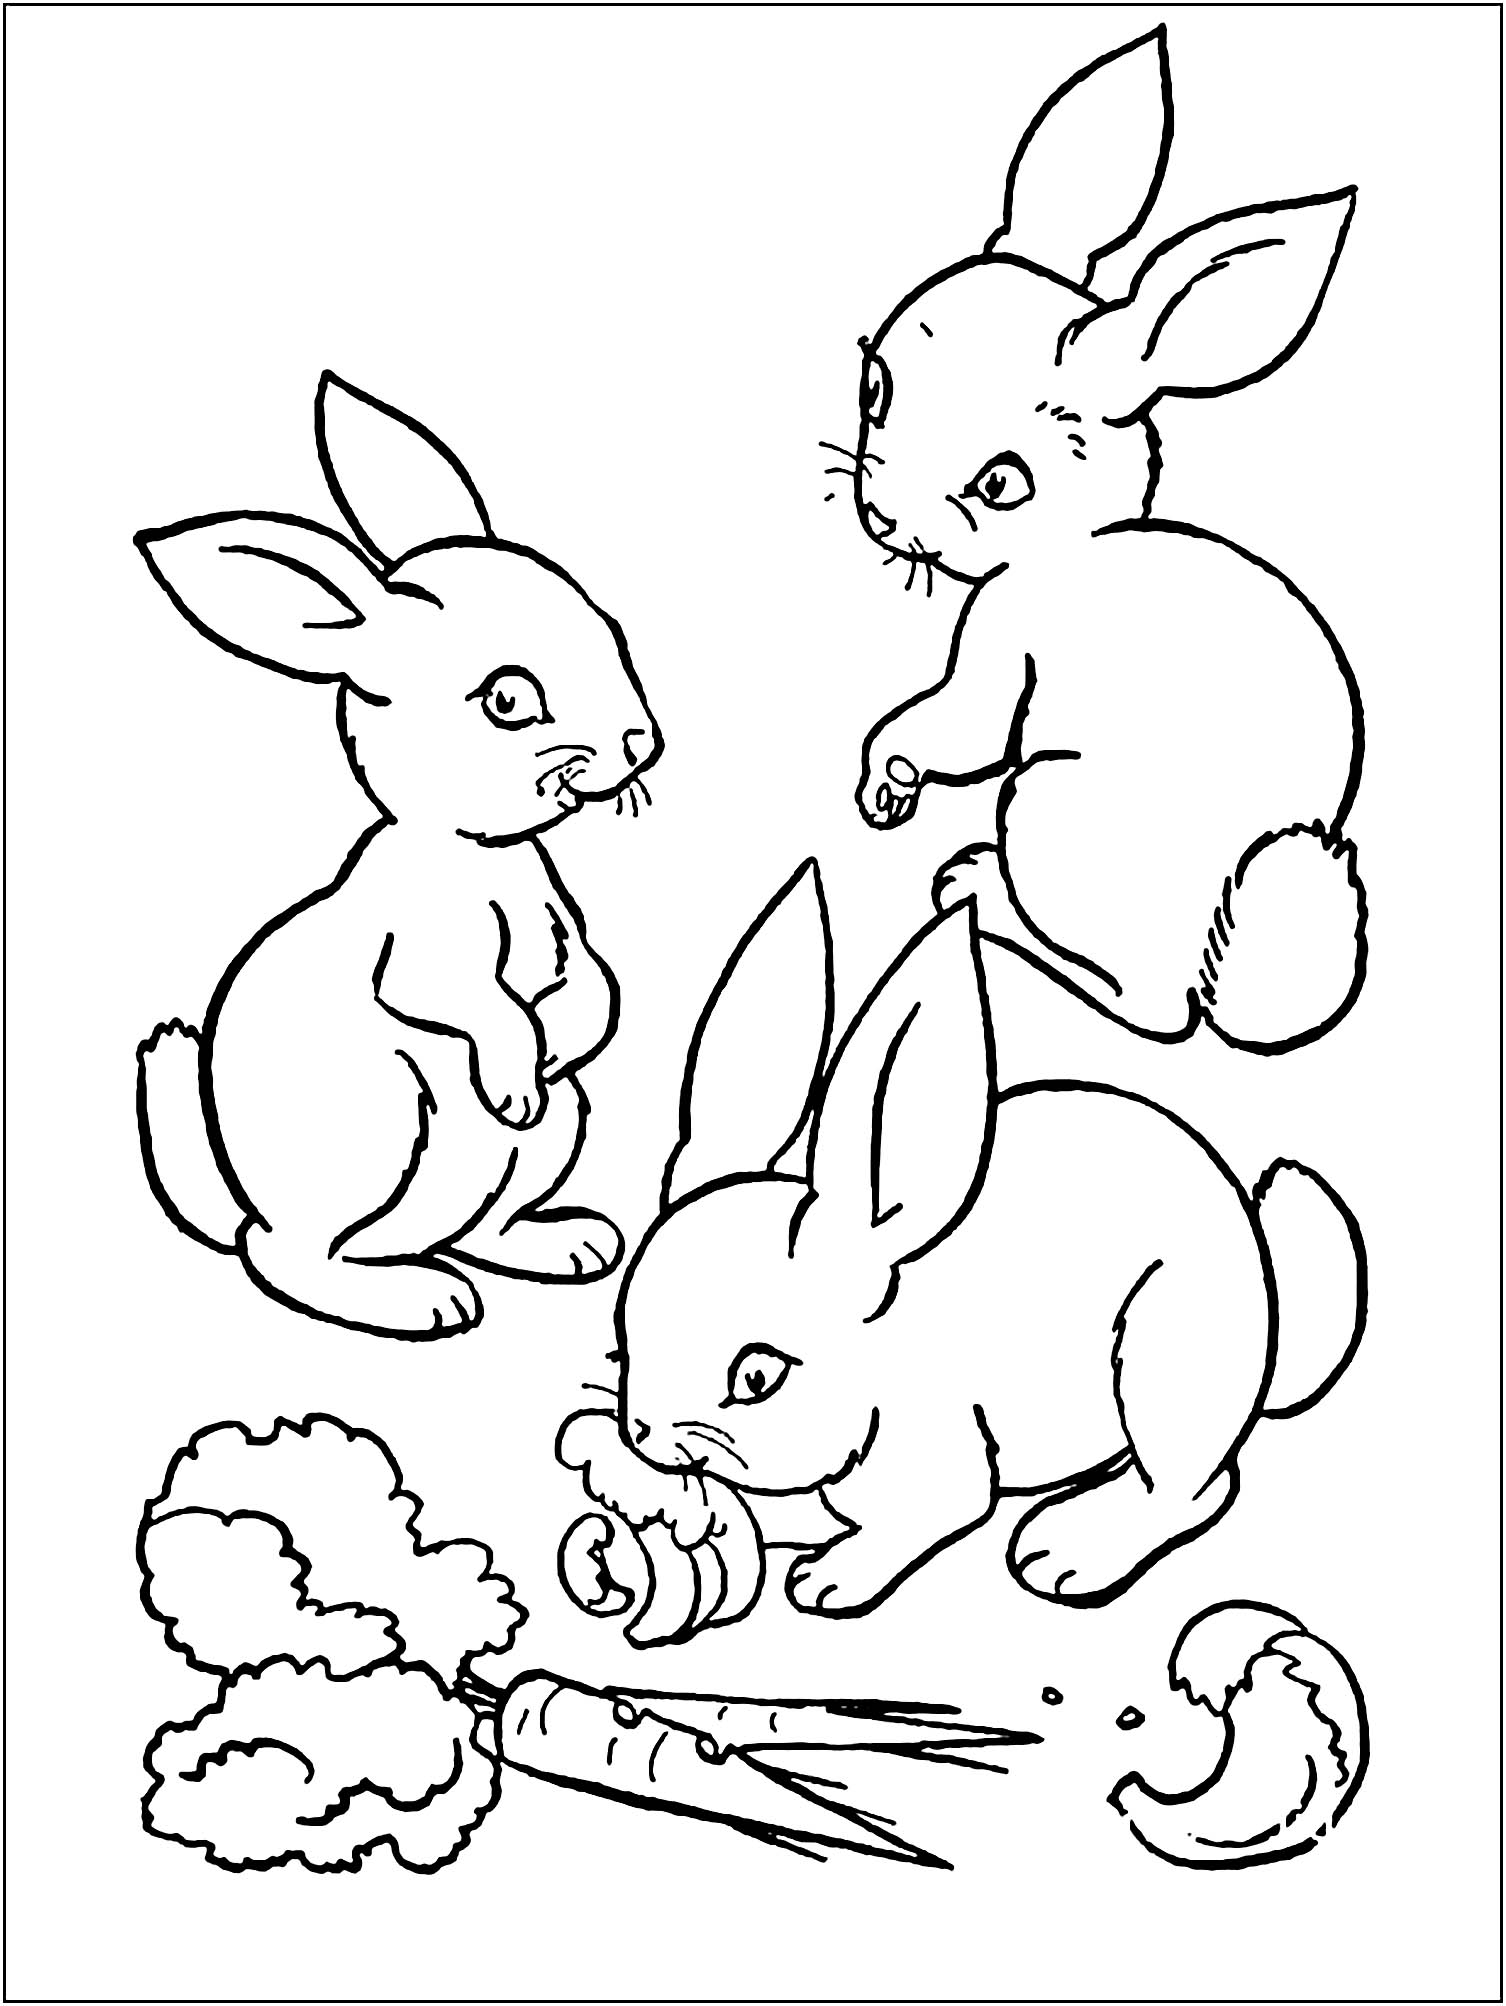 bunny coloring picture rabbit free to color for children rabbit kids coloring pages coloring picture bunny